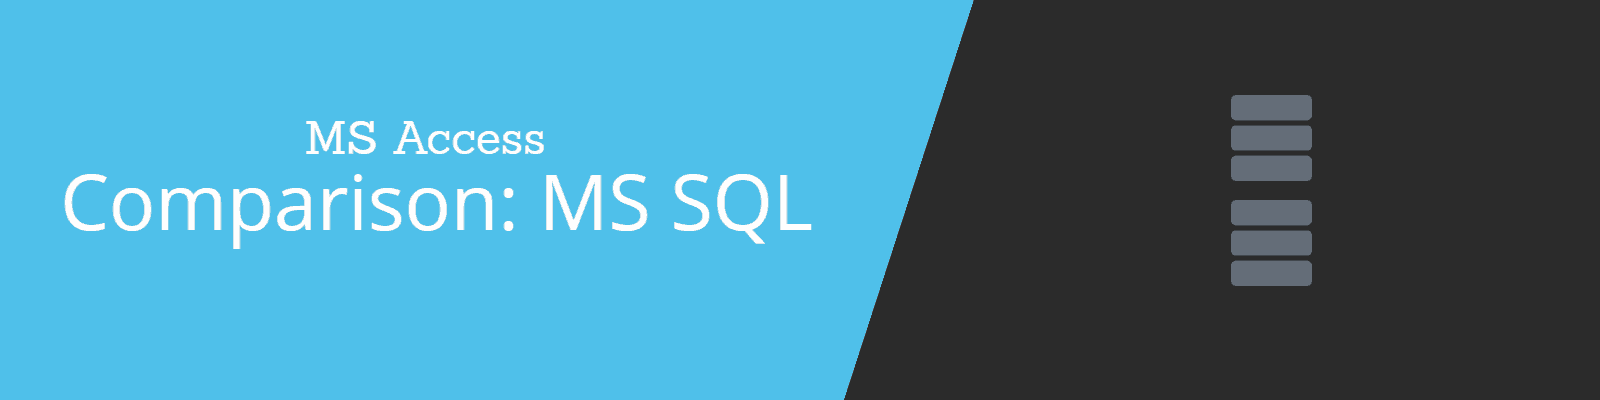 MS Access vs MS SQL